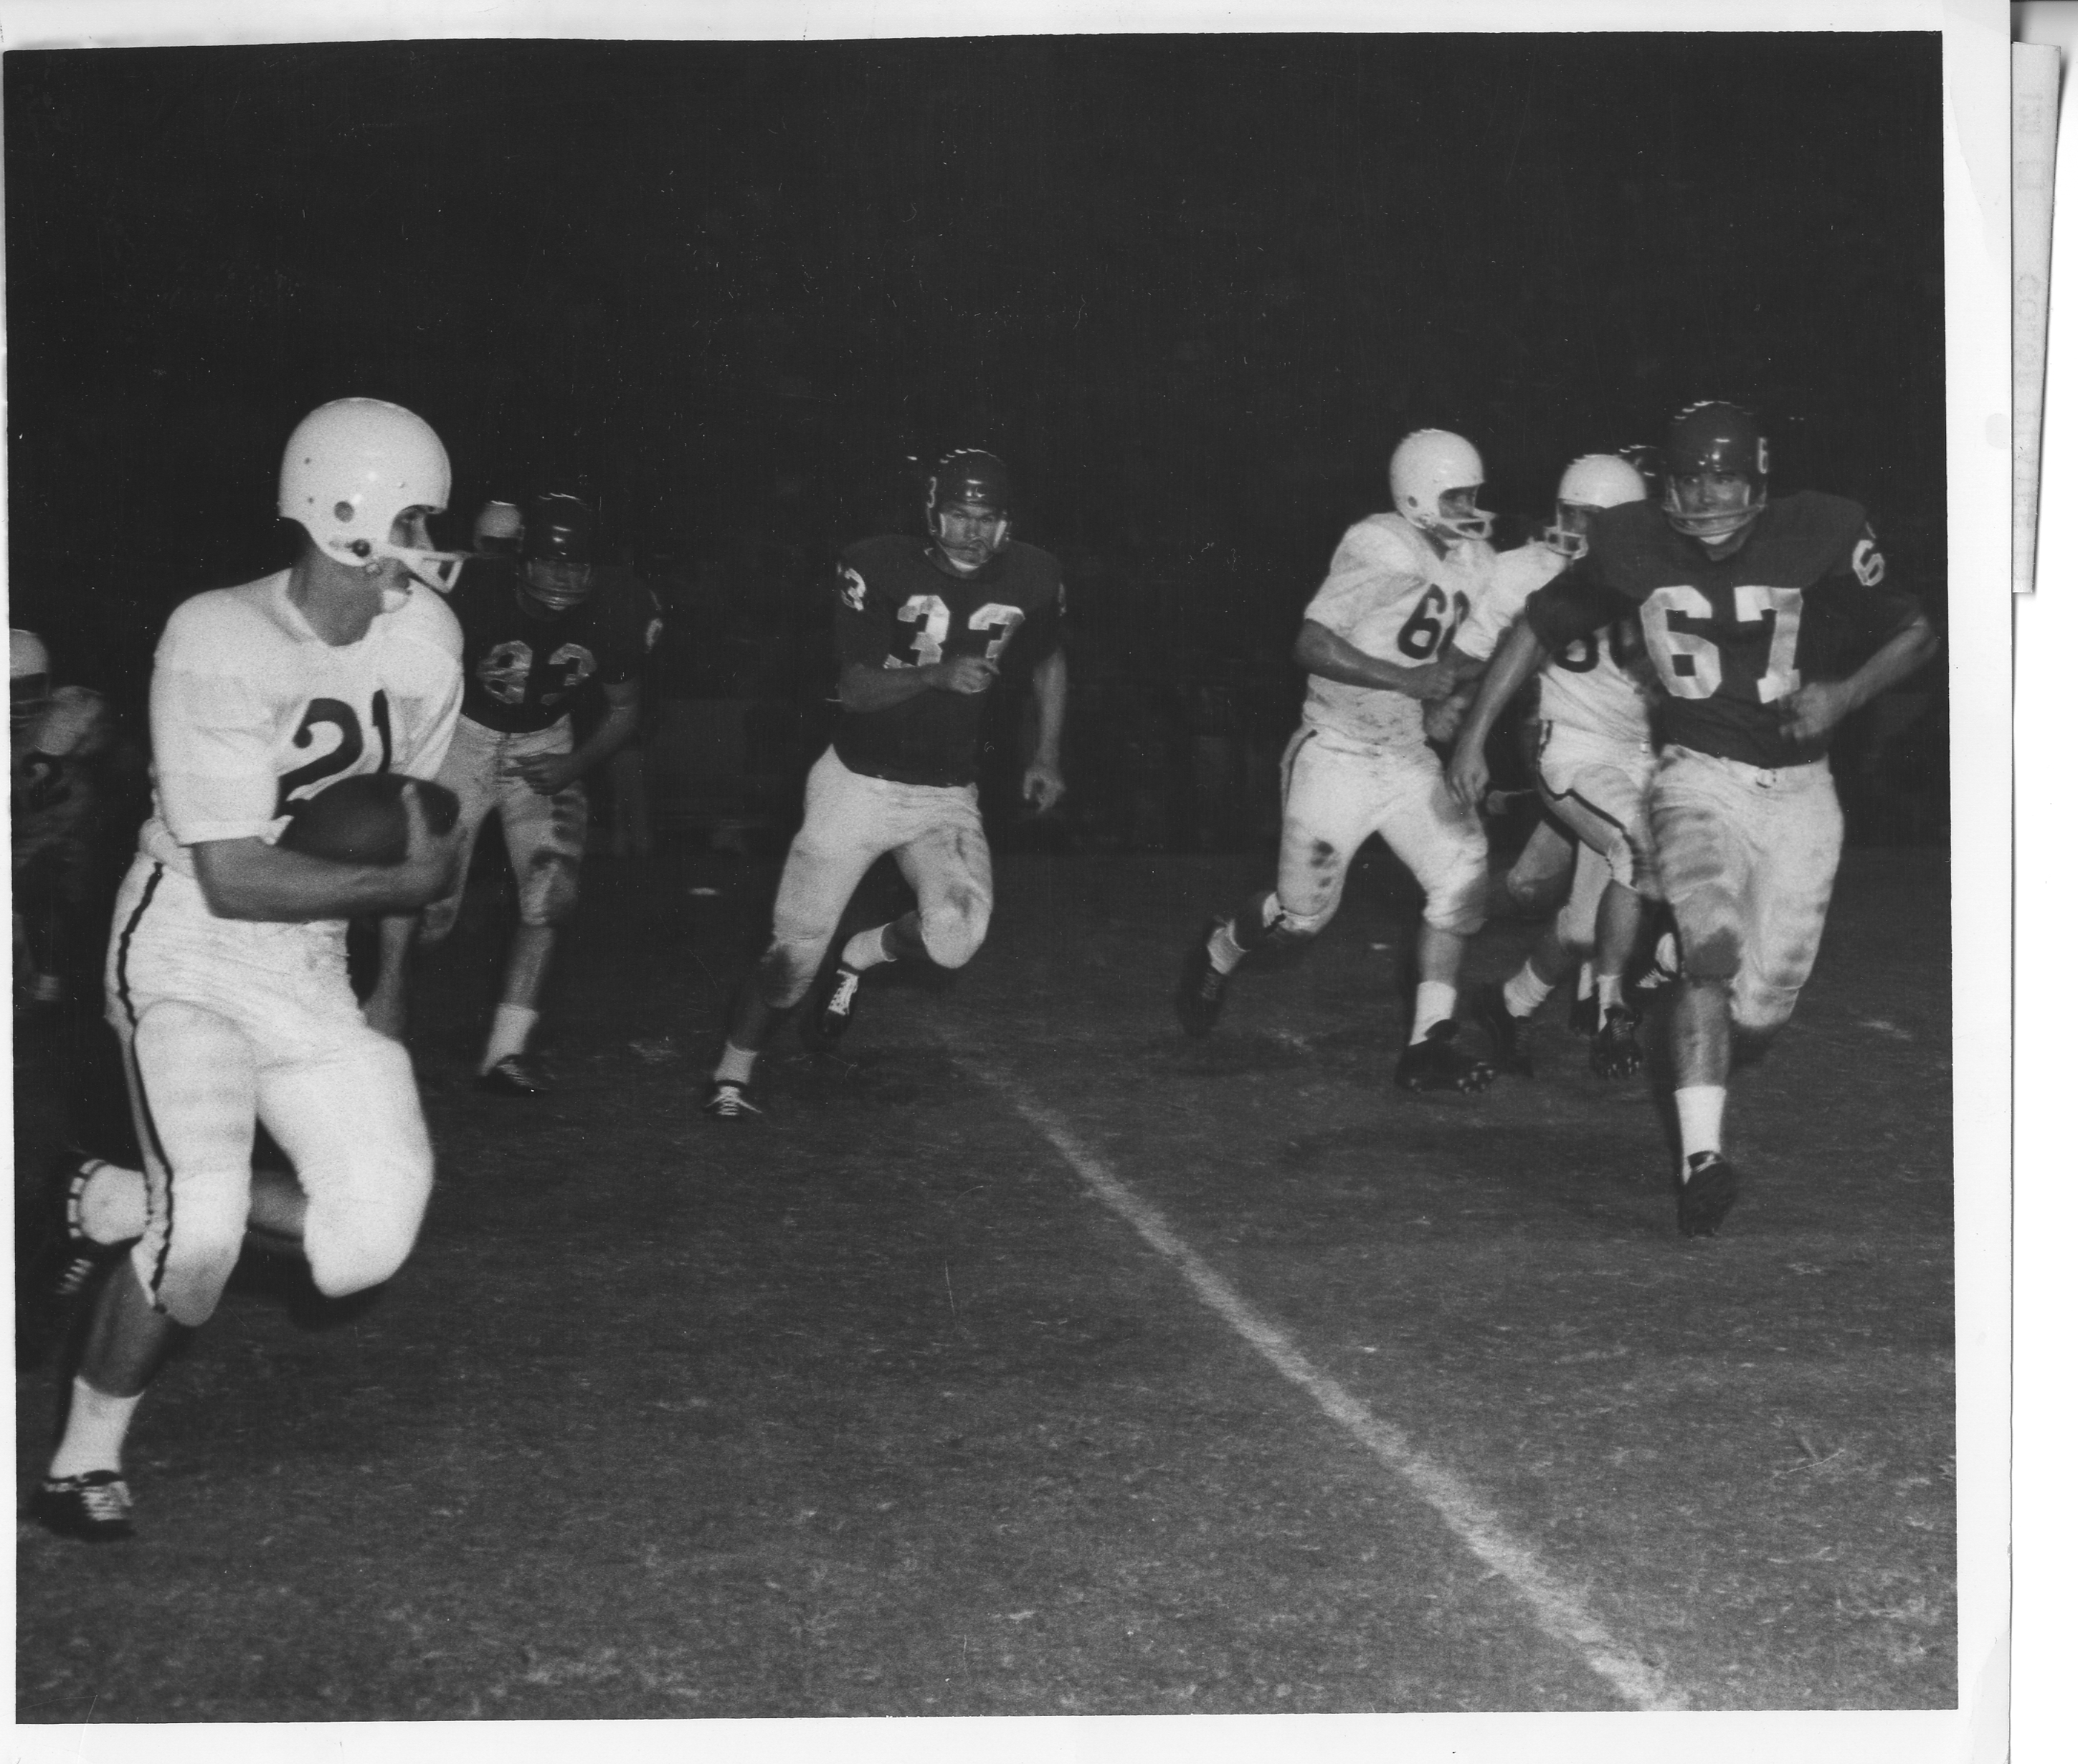 1958 Houston Cougars football vs Texas A&M Aggies.jpg English: The 1958 Houston Cougars football team face off against the Texas A&M Aggies